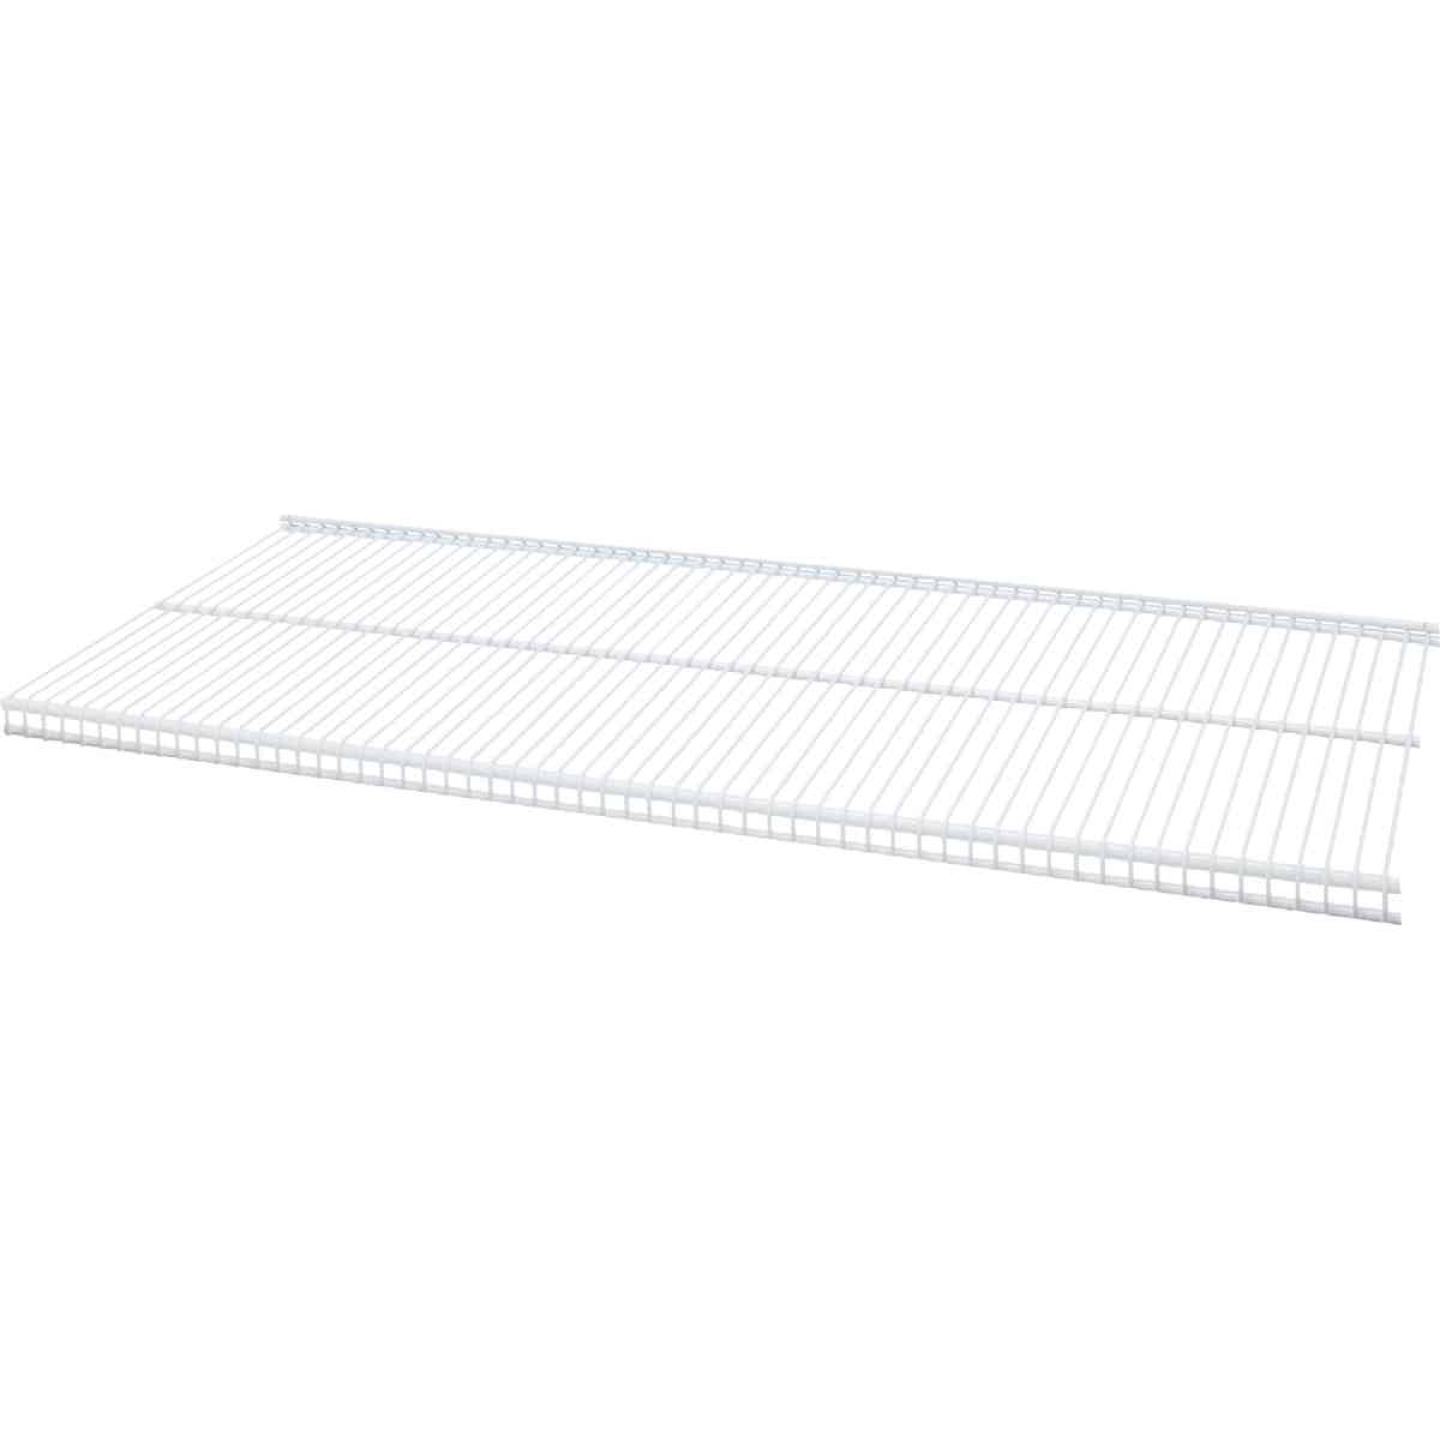 Organized Living FreedomRail 3 Ft. W. x 12 in. D Profile Ventilated Closet Shelf, White Image 2